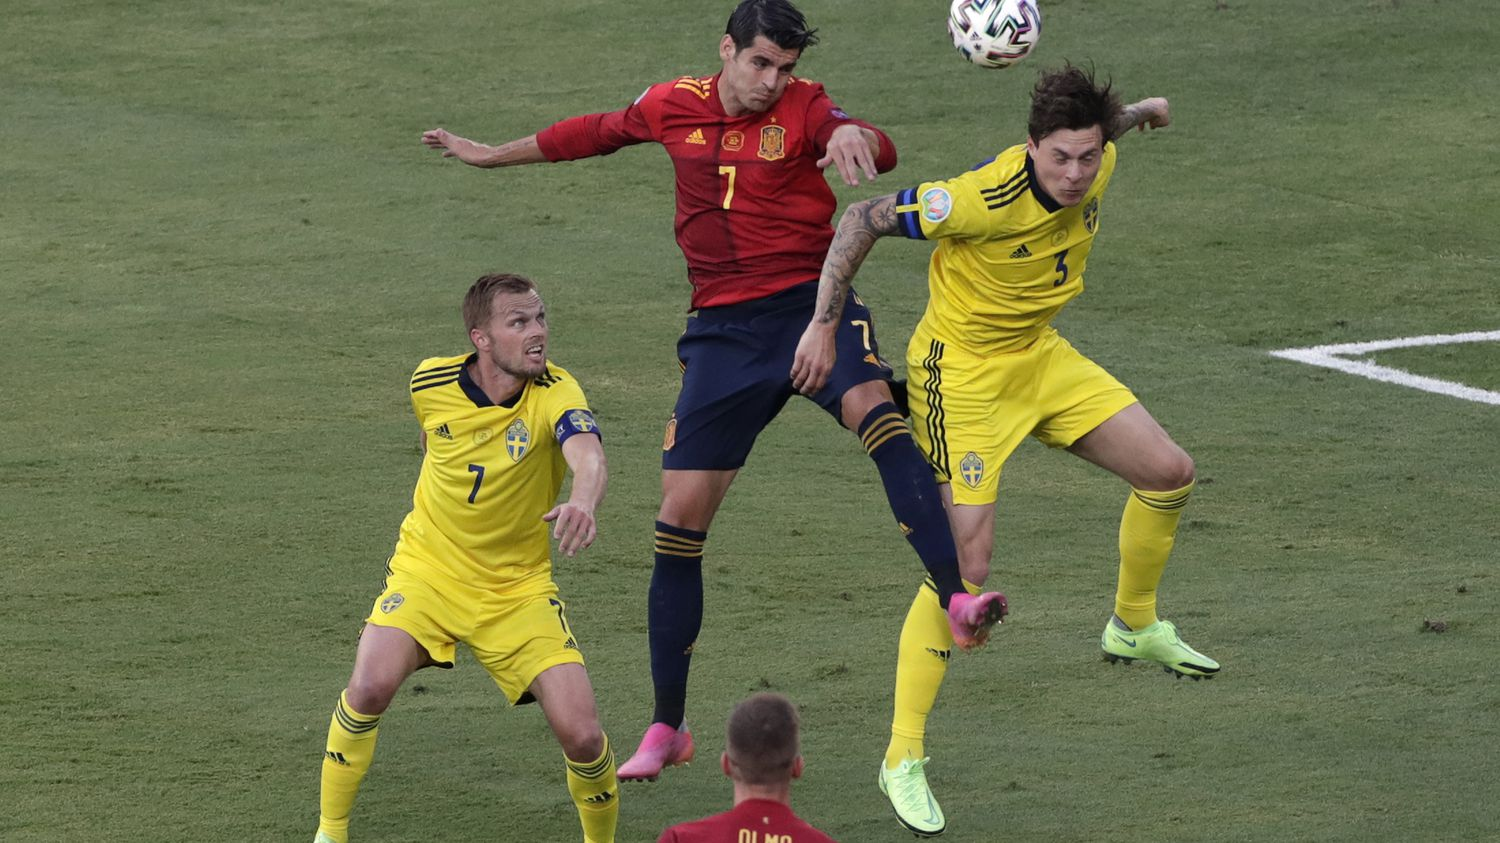 Spain dominates but does not win (0-0)